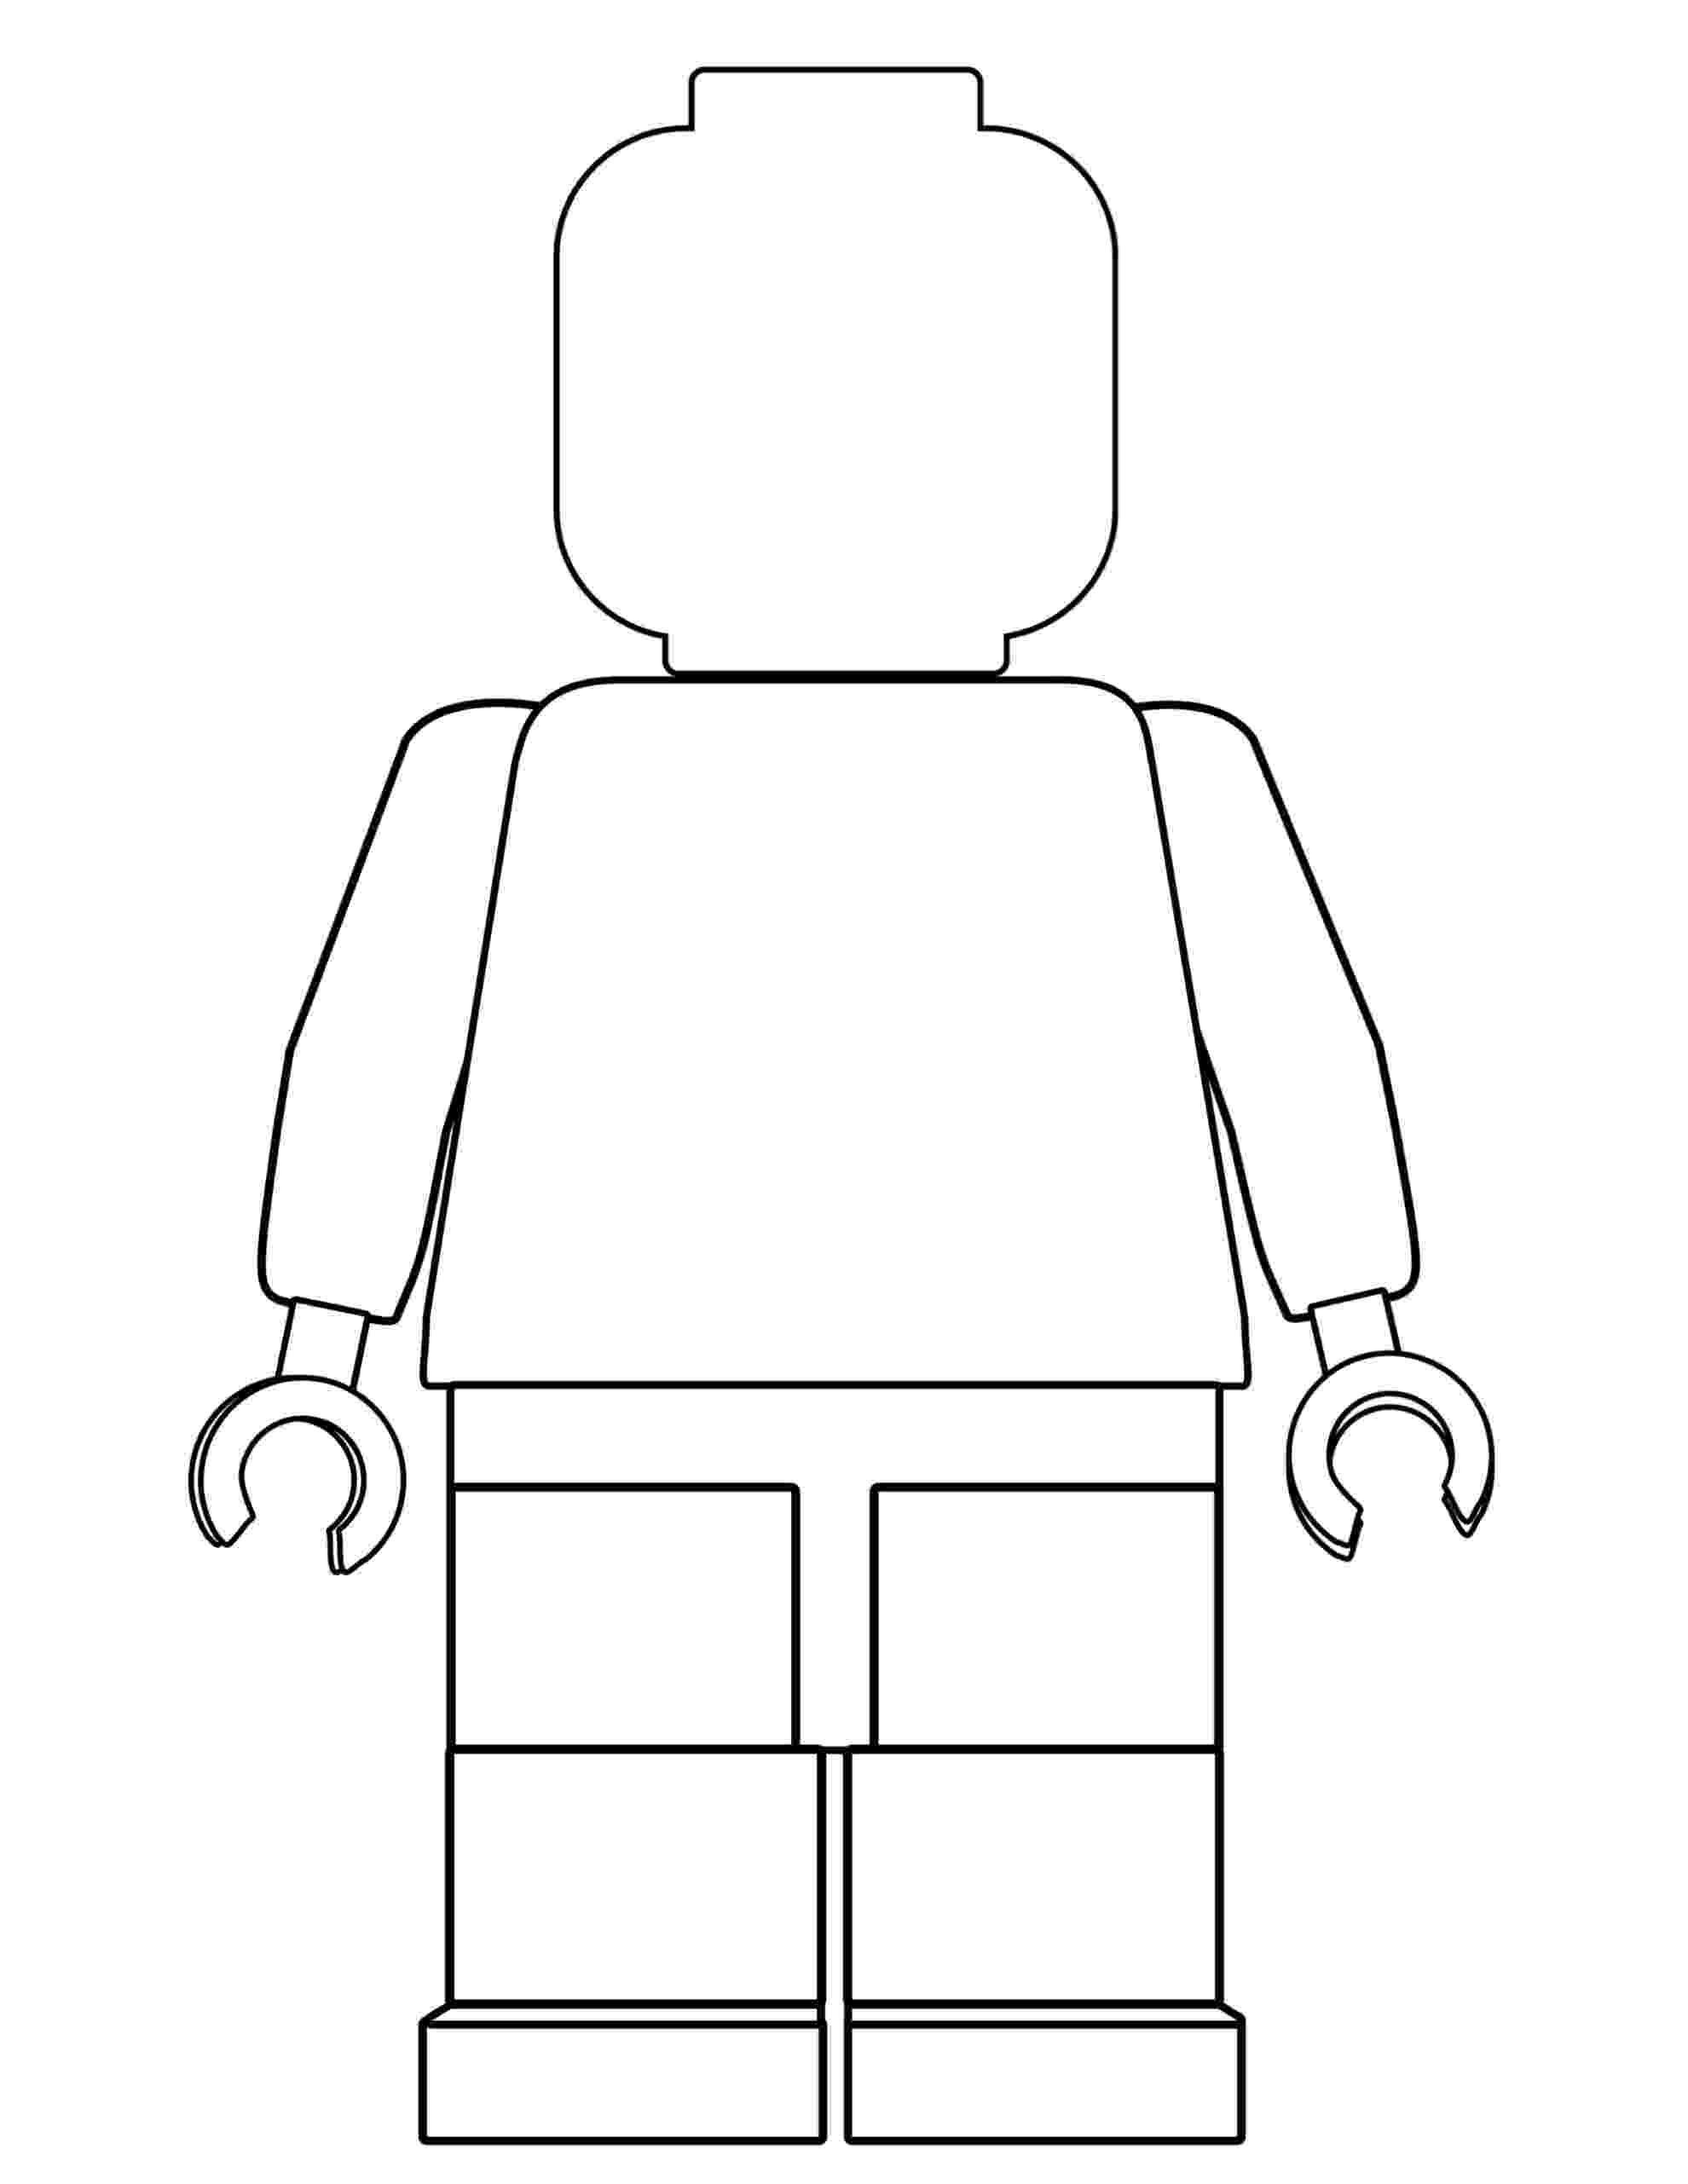 free lego printable coloring book free printable lego coloring pages for kids cool2bkids book lego printable coloring free